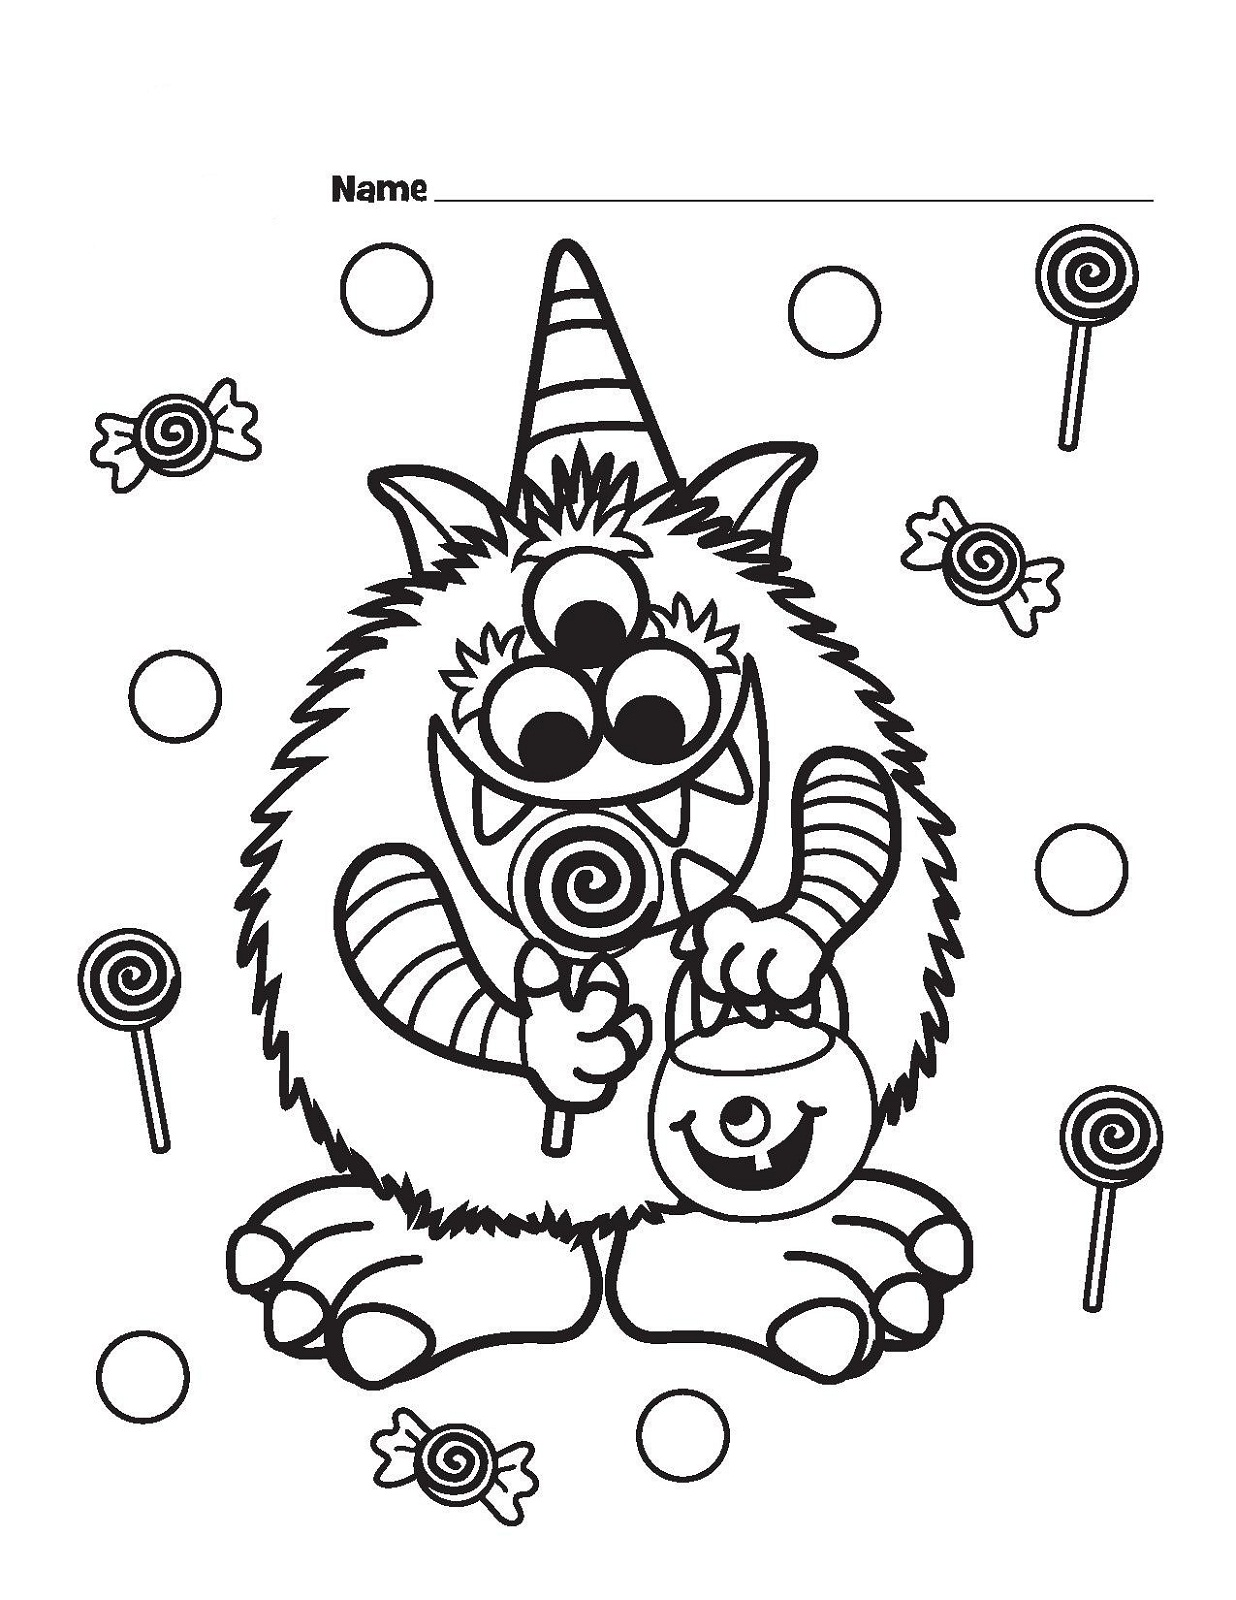 1236x1600 Candyland Coloring Pages For Kids Activity Shelter